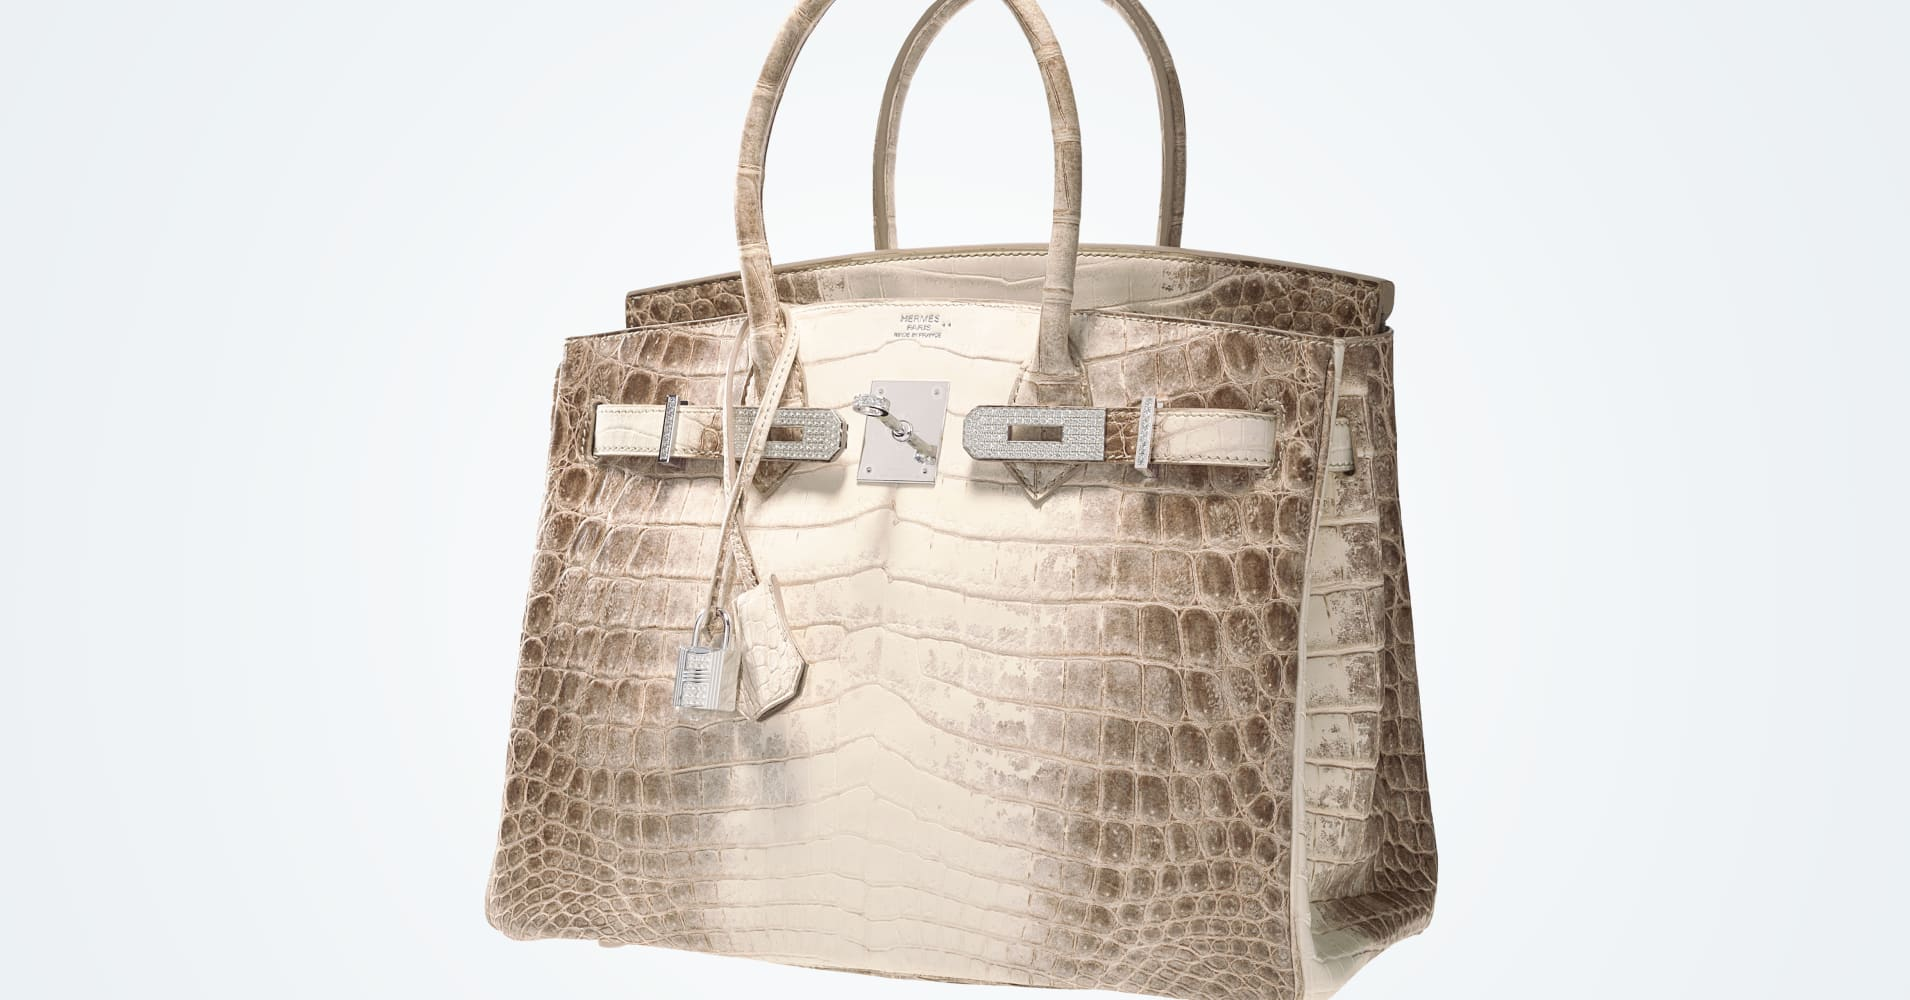 cb32f23637f The world s most expensive handbag could be yours